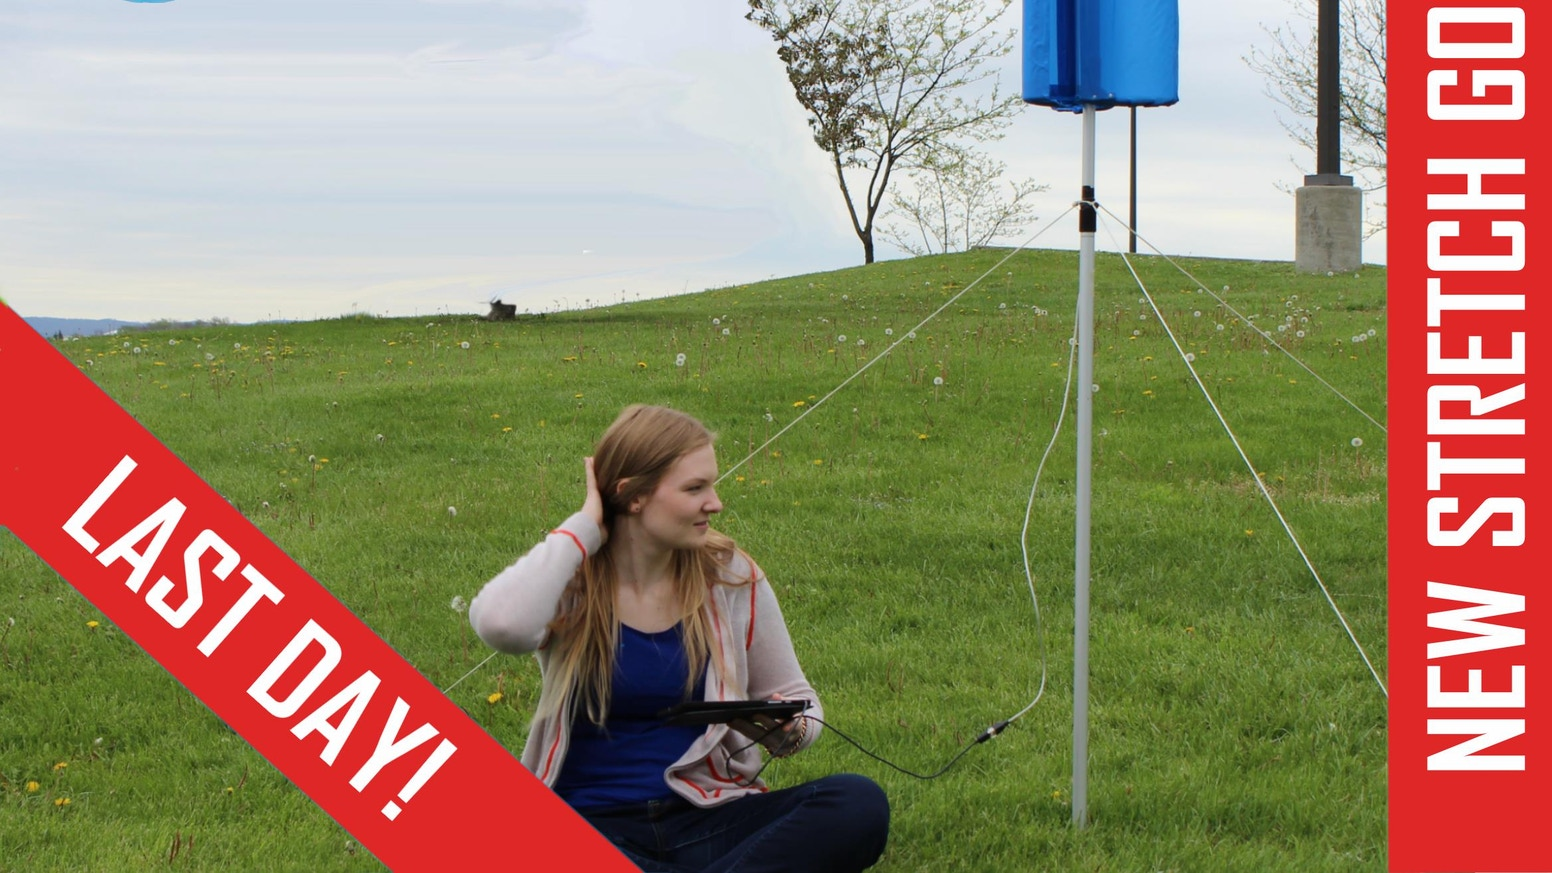 Collapsible, portable, light-weight wind turbines that go where you go.  Great for hiking, camping and more!